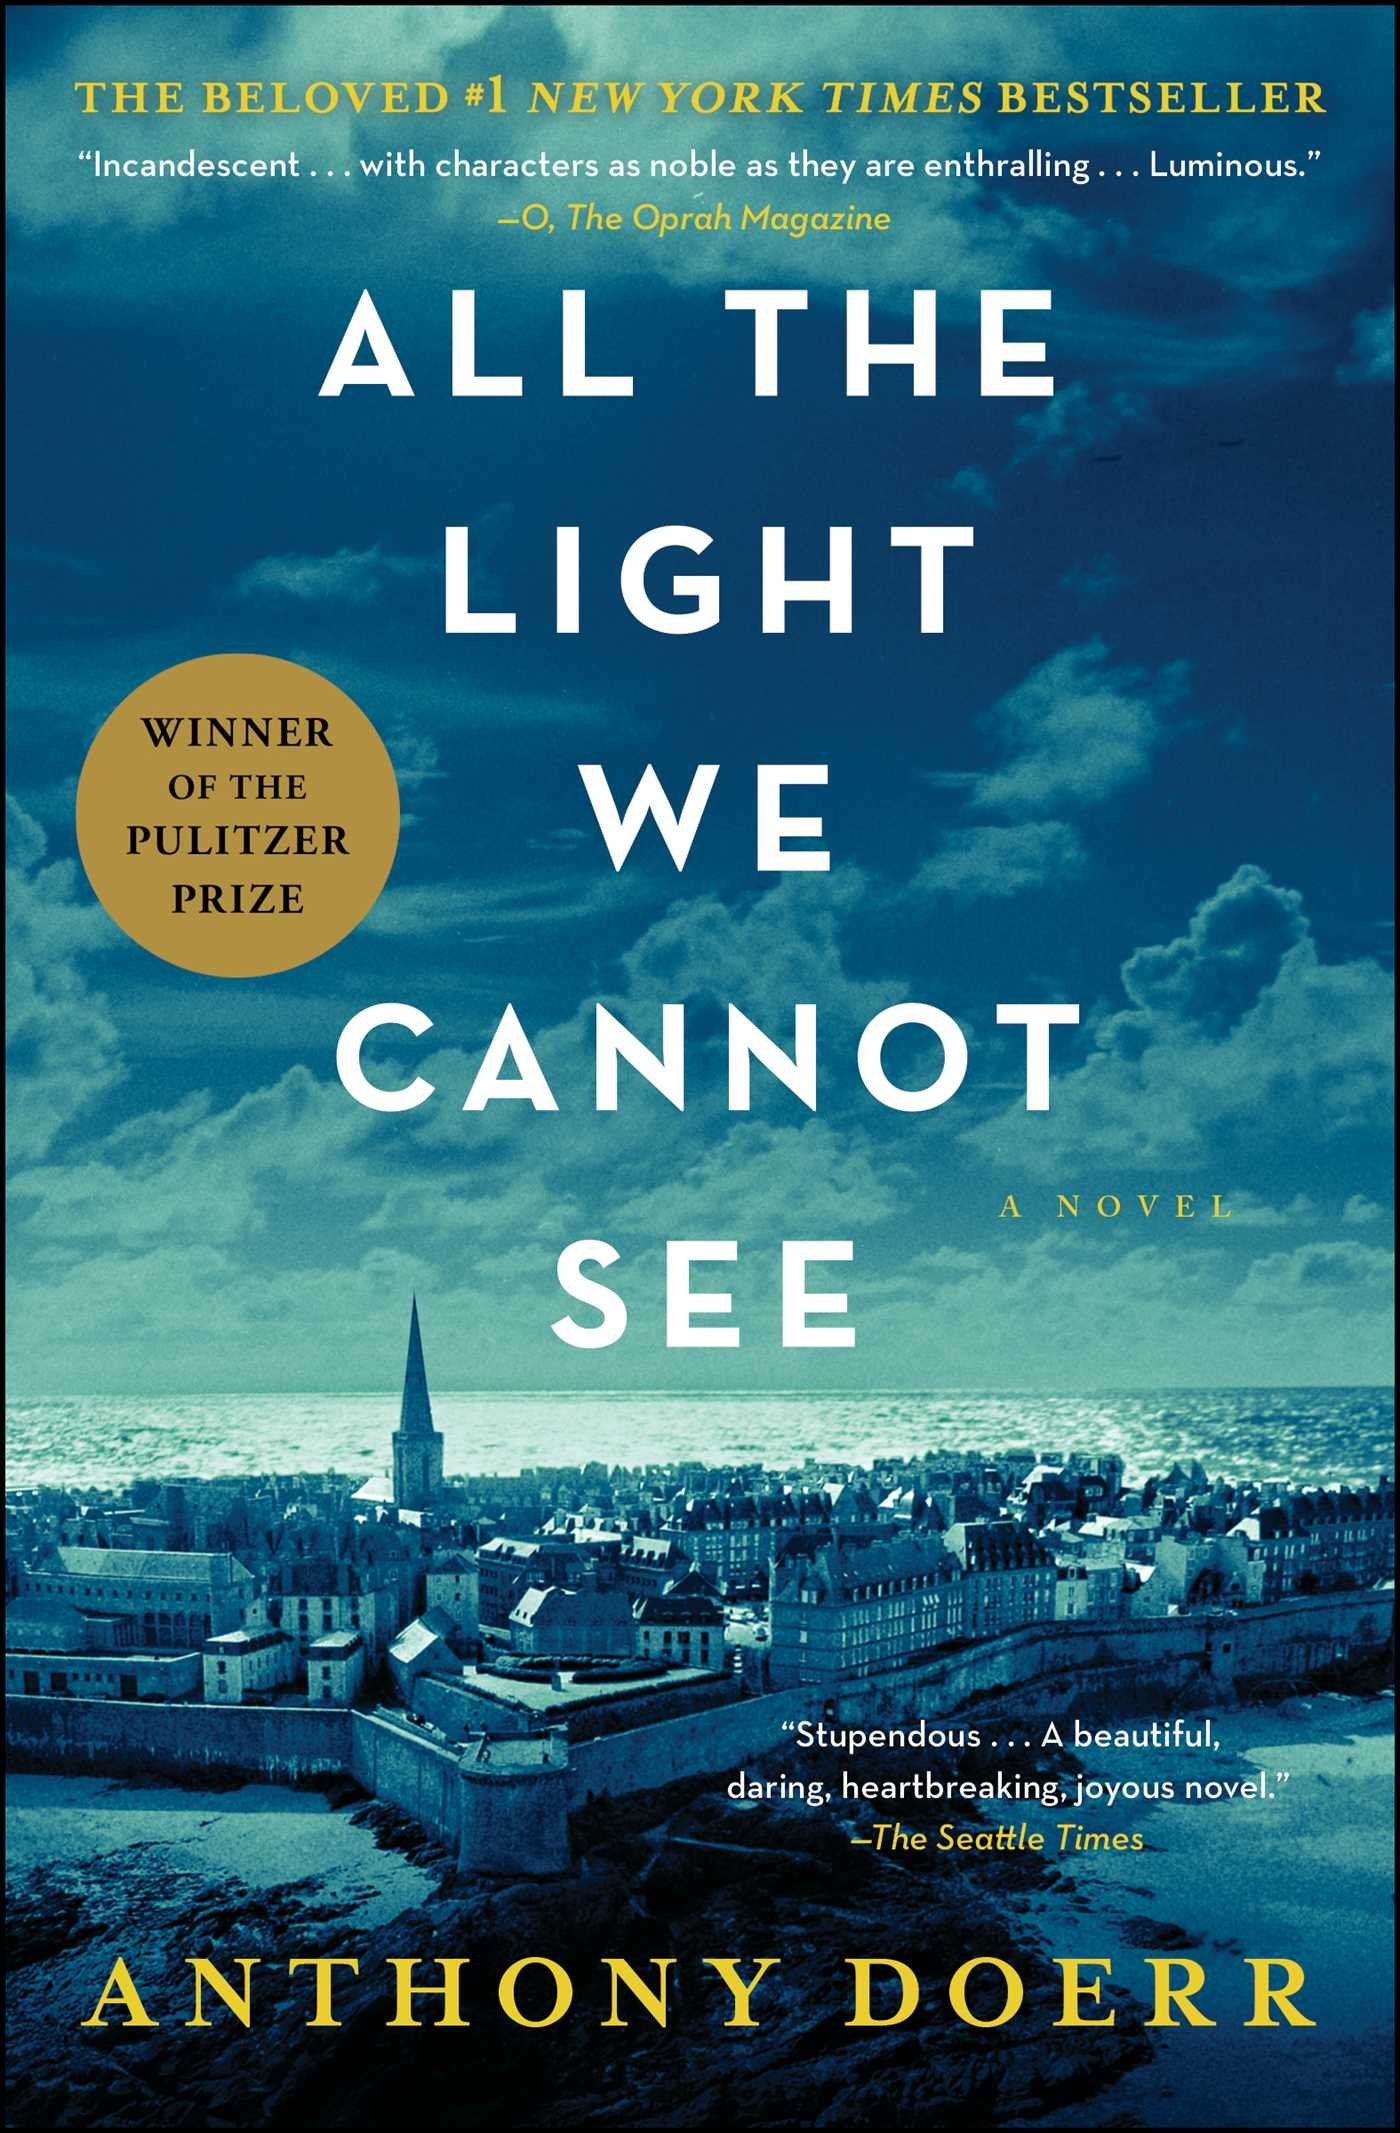 Amazon.com: All the Light We Cannot See: A Novel (9781501173219): Doerr,  Anthony: Books